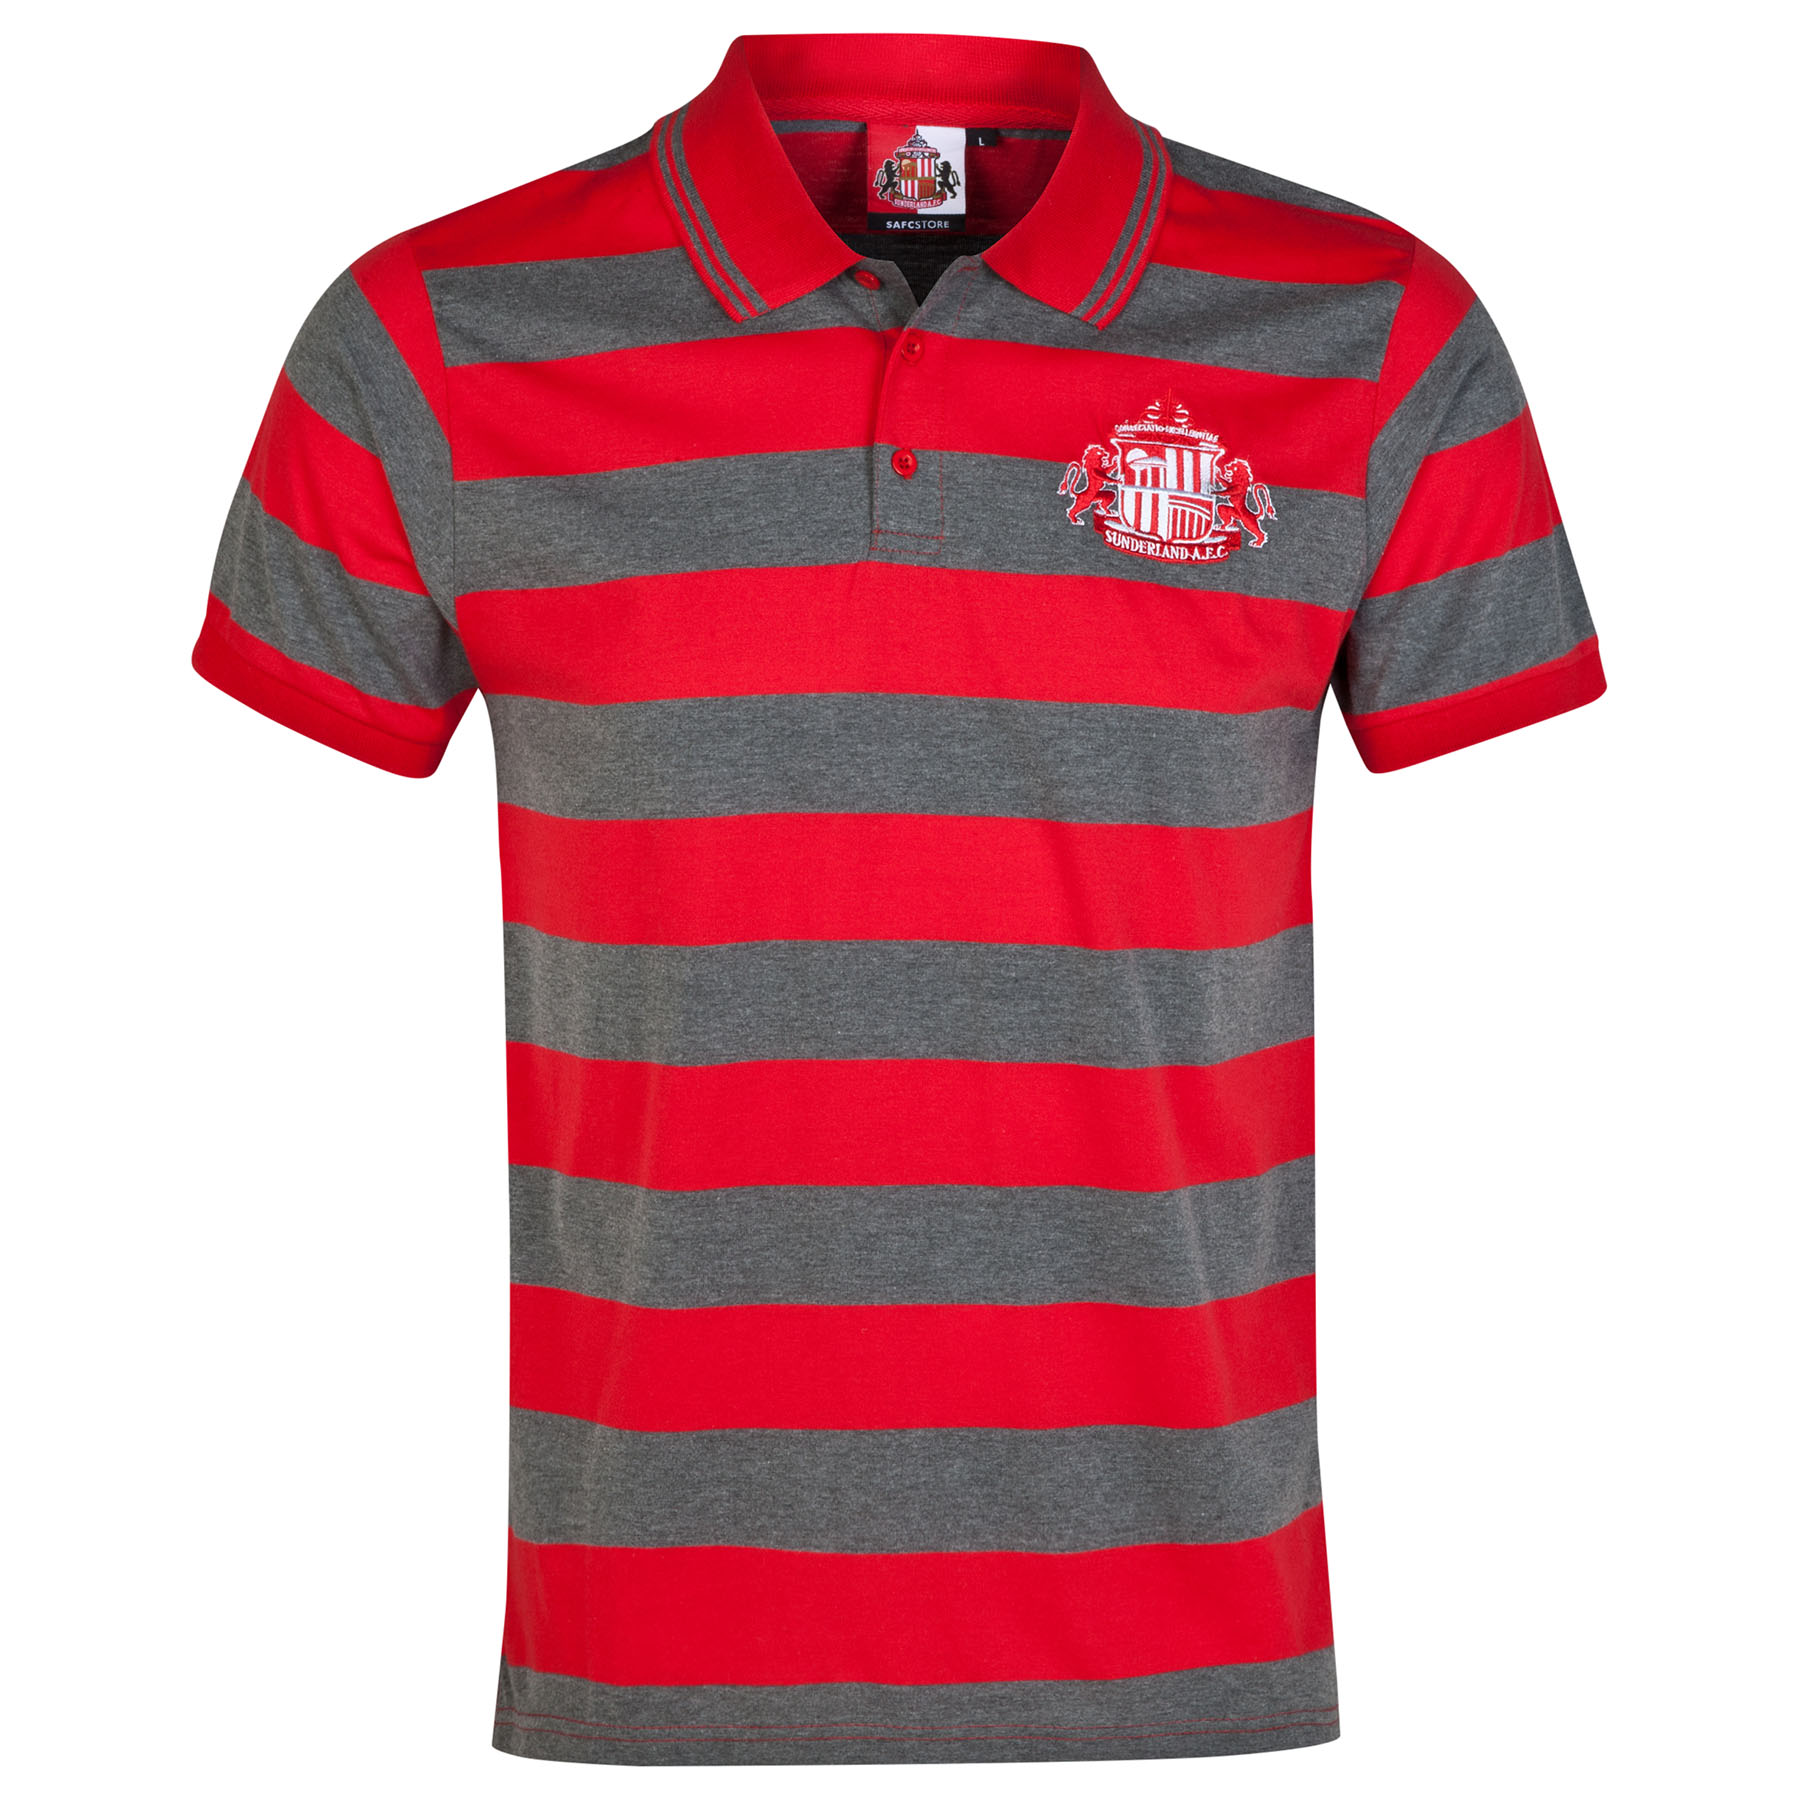 Sunderland Essential Polo Shirt - Red/Vintage Marl -Older Boys